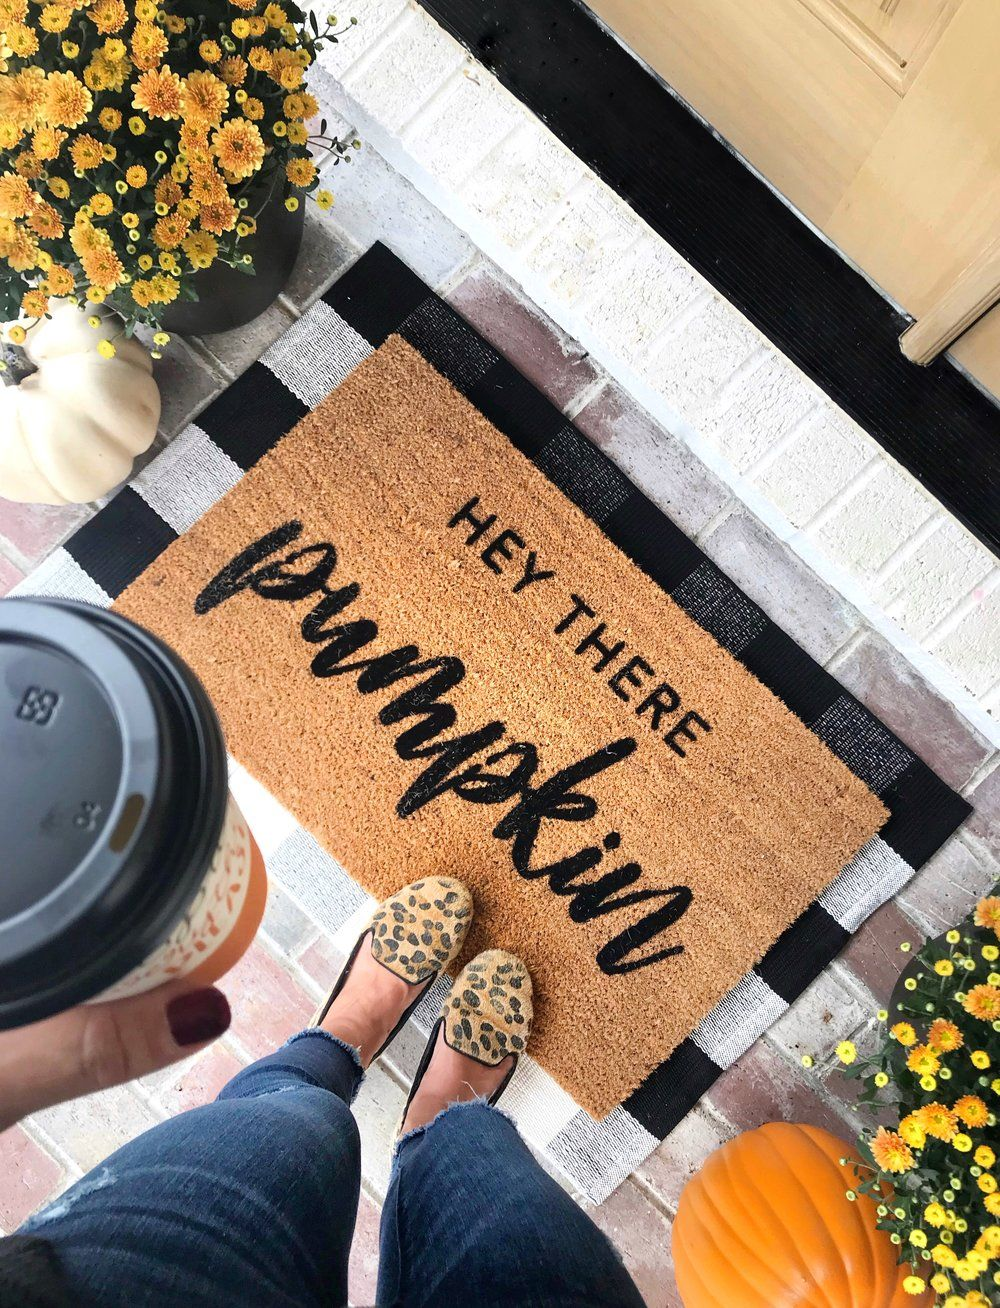 6 Tricks For A Pretty Fall Porch On A Budget - Chrissy Marie Blog